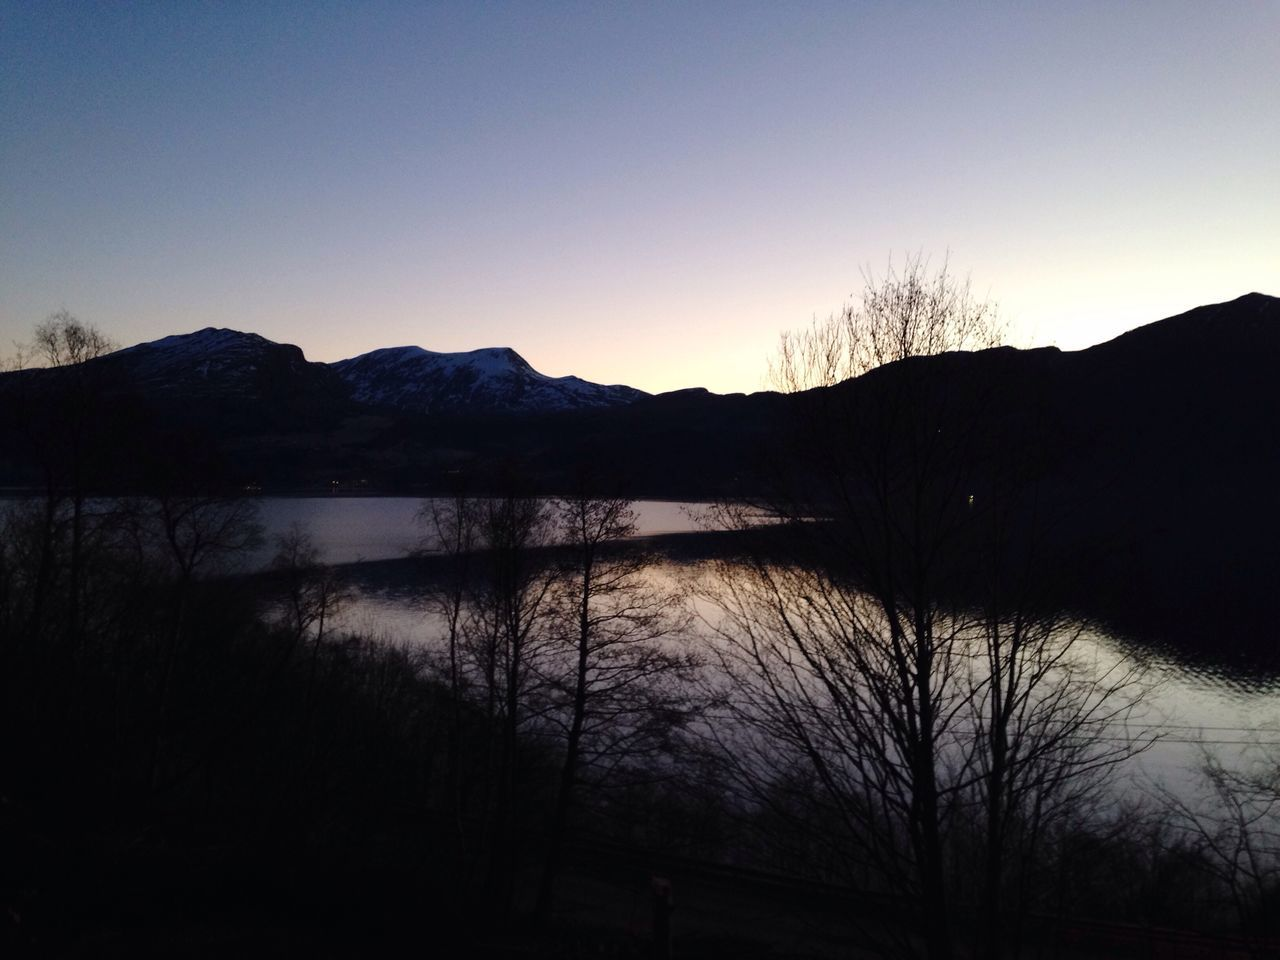 silhouette, scenics, mountain, nature, tranquil scene, tranquility, sunset, lake, beauty in nature, water, no people, reflection, mountain range, outdoors, sky, tree, landscape, travel destinations, bare tree, clear sky, day